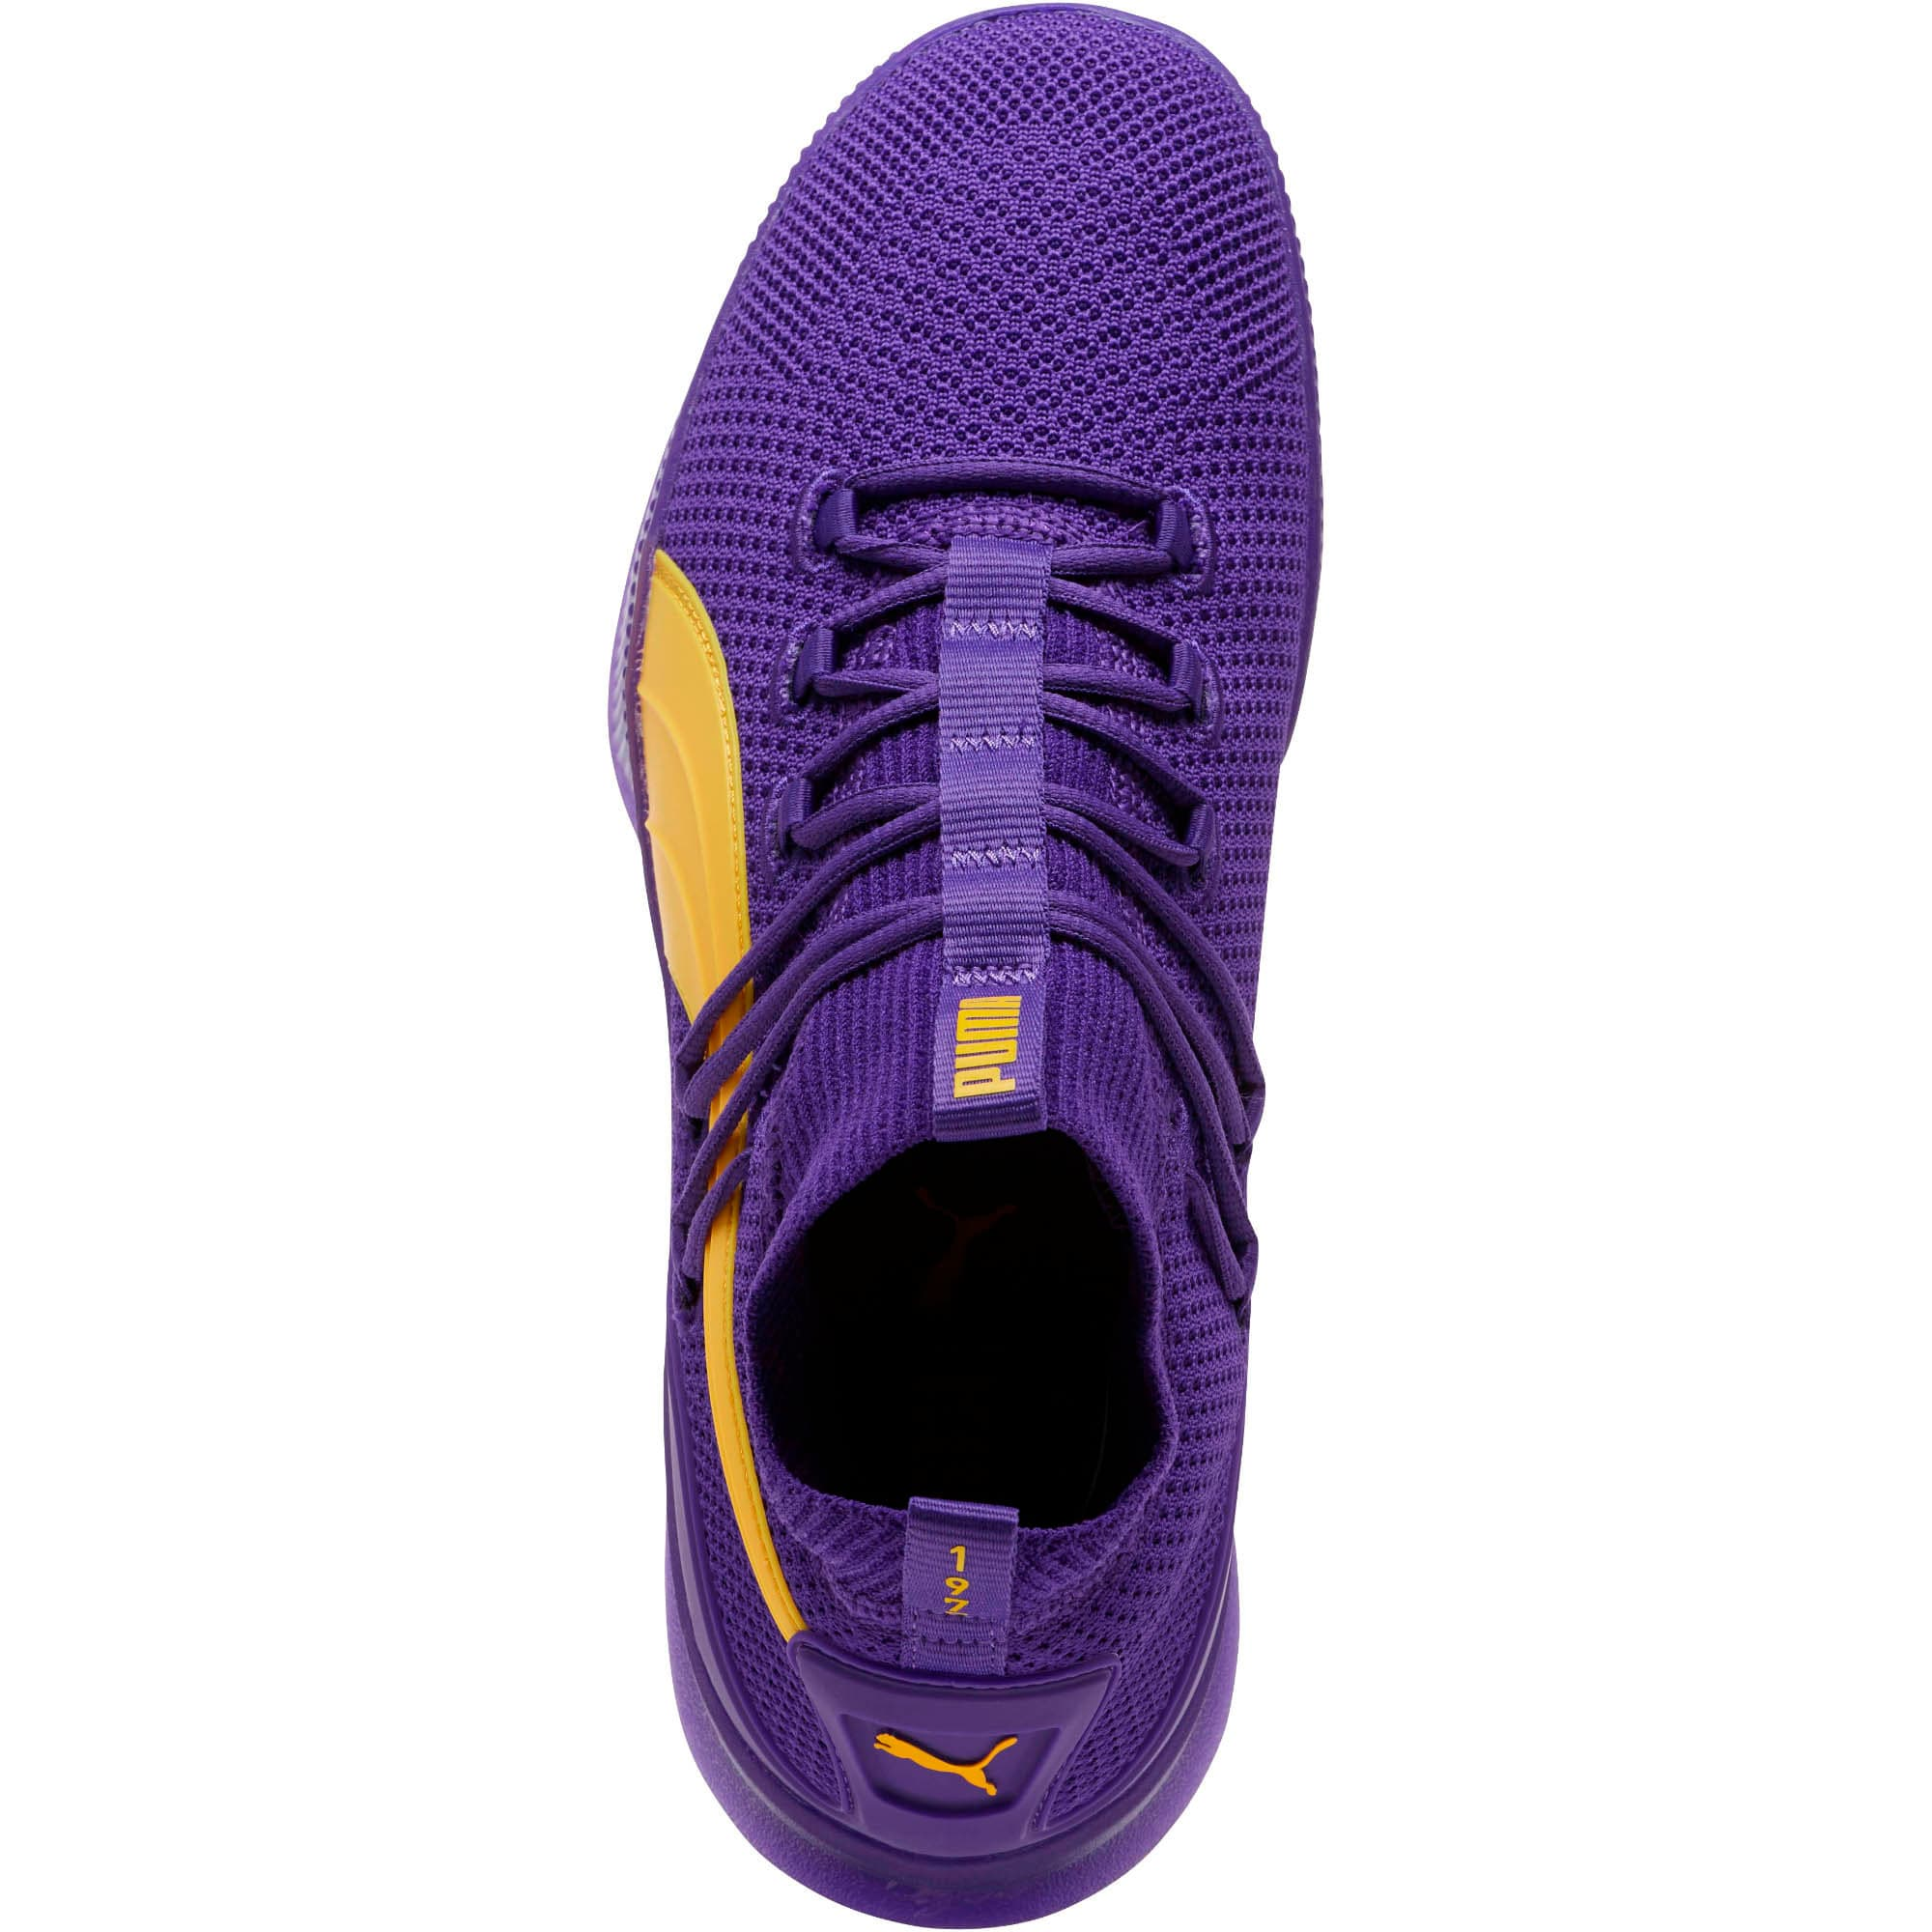 Thumbnail 5 of Clyde Court Core Basketball Shoes, Prism Violet, medium